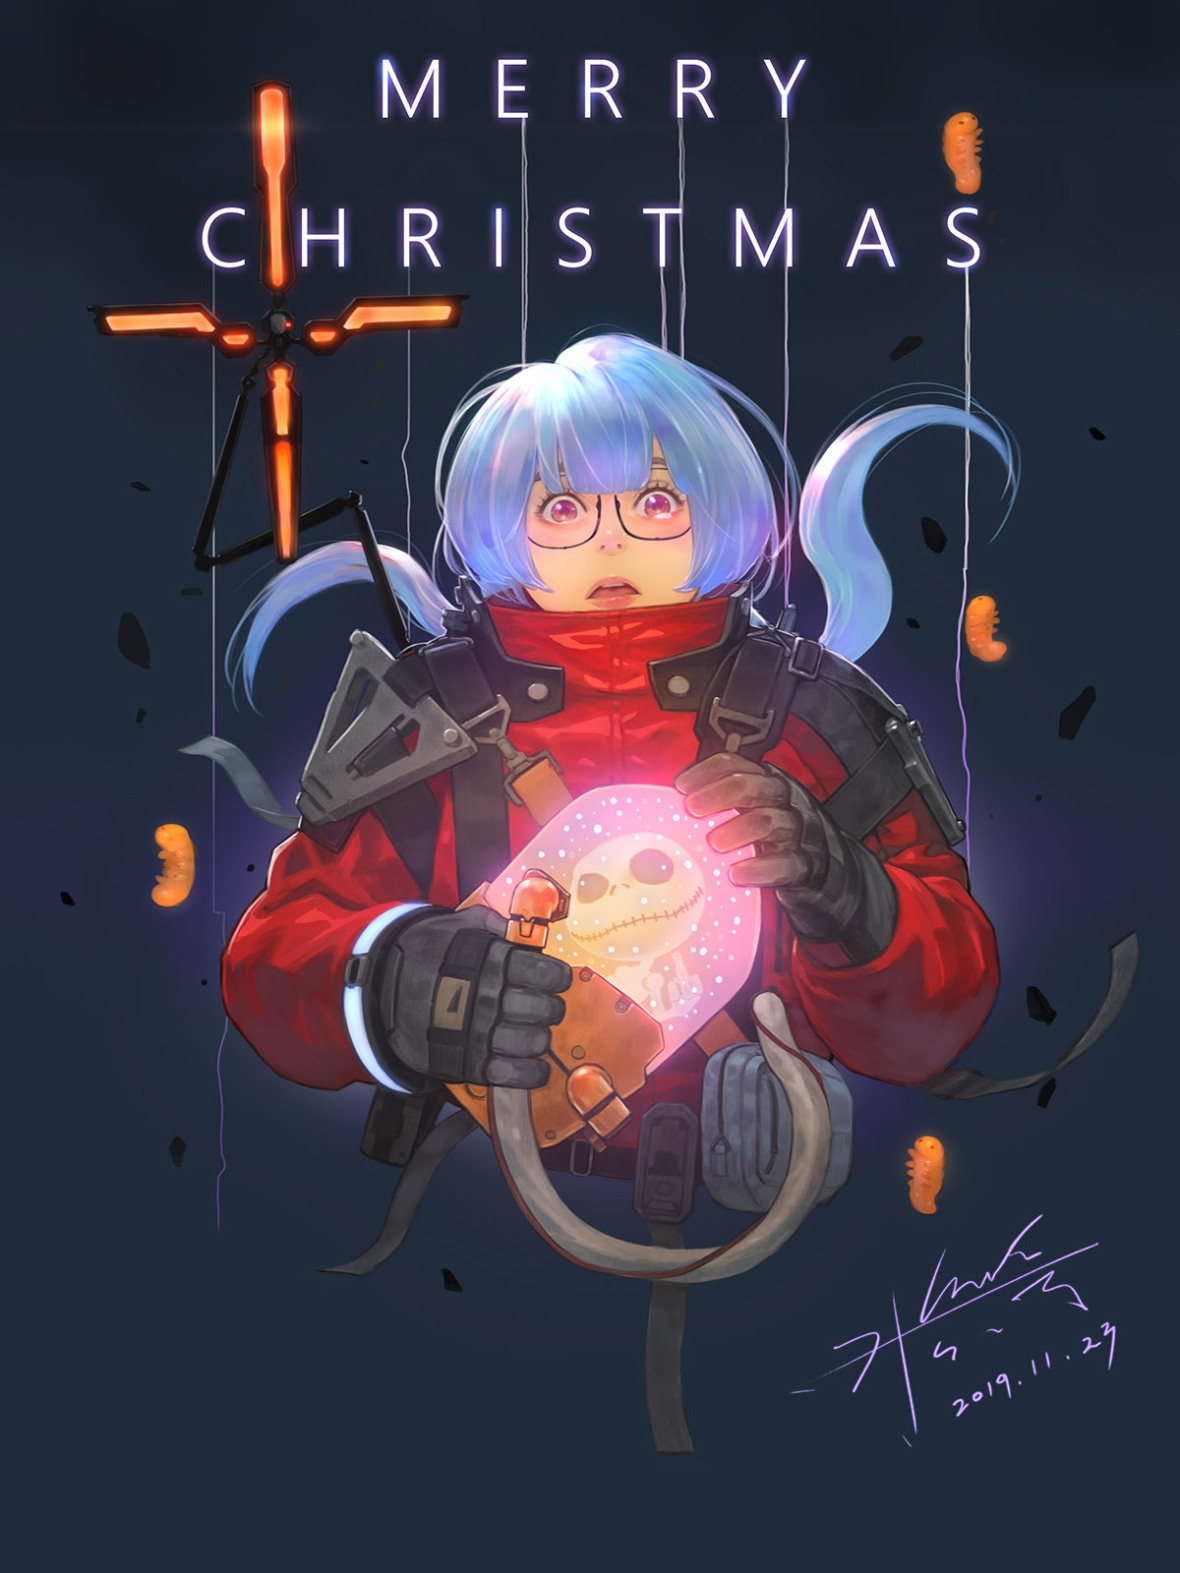 For DeathStanding-Christmas-20191127-a